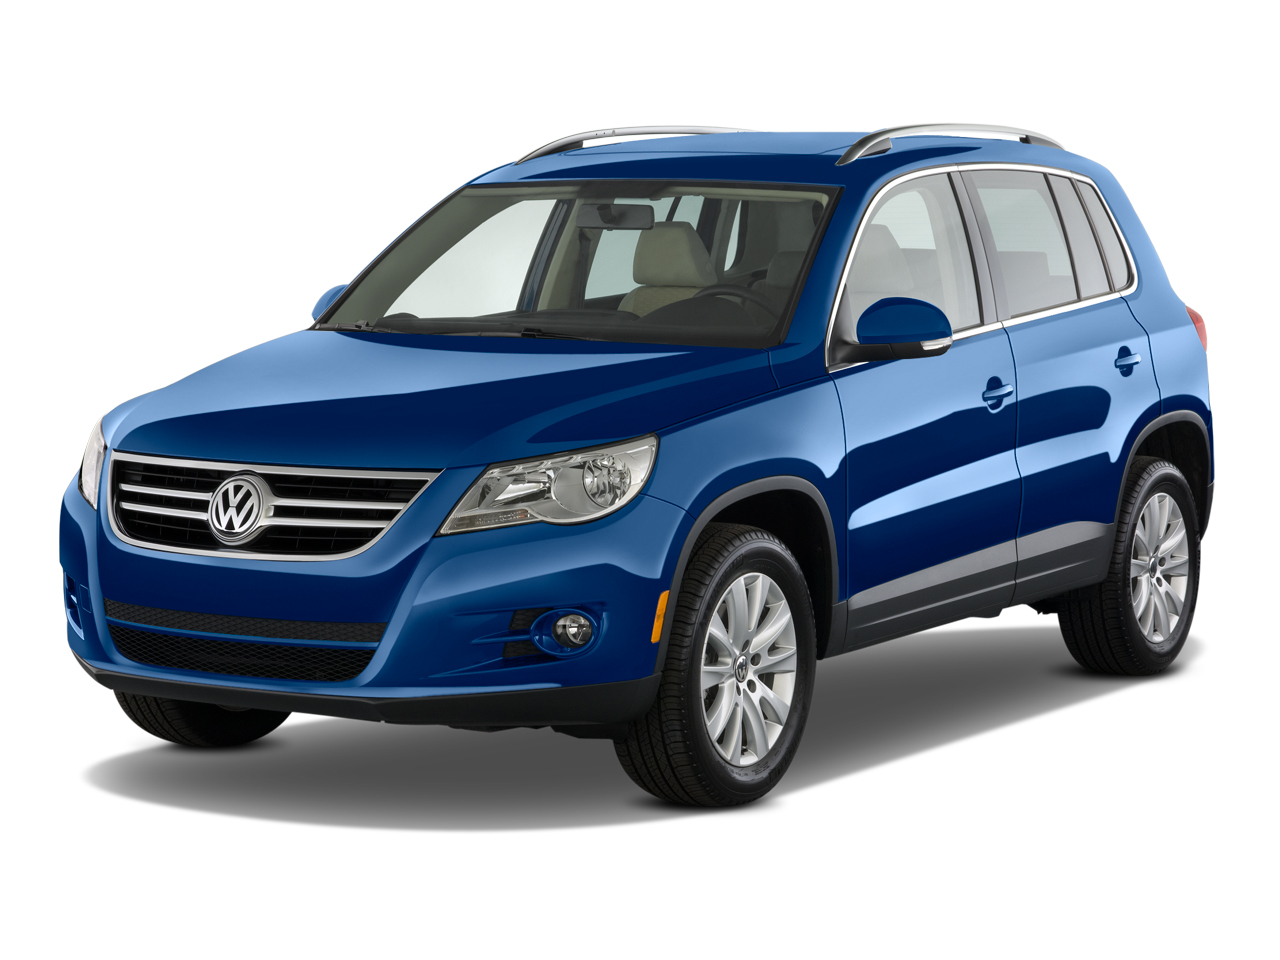 2011 volkswagen tiguan vw styling review the car connection. Black Bedroom Furniture Sets. Home Design Ideas